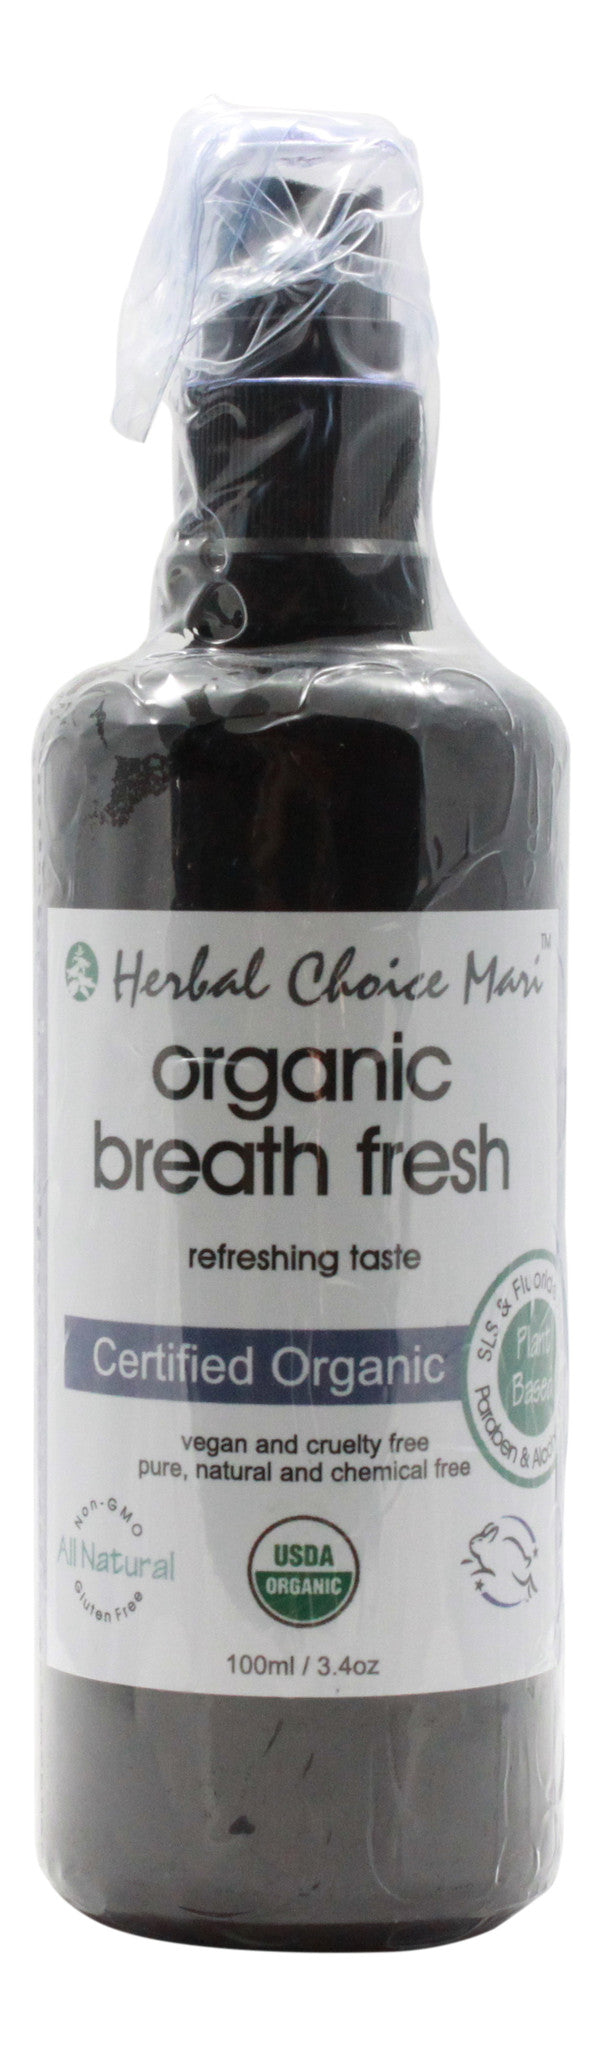 Organic Breath Fresh - Refreshing Taste - 3.4 oz Spray - Front